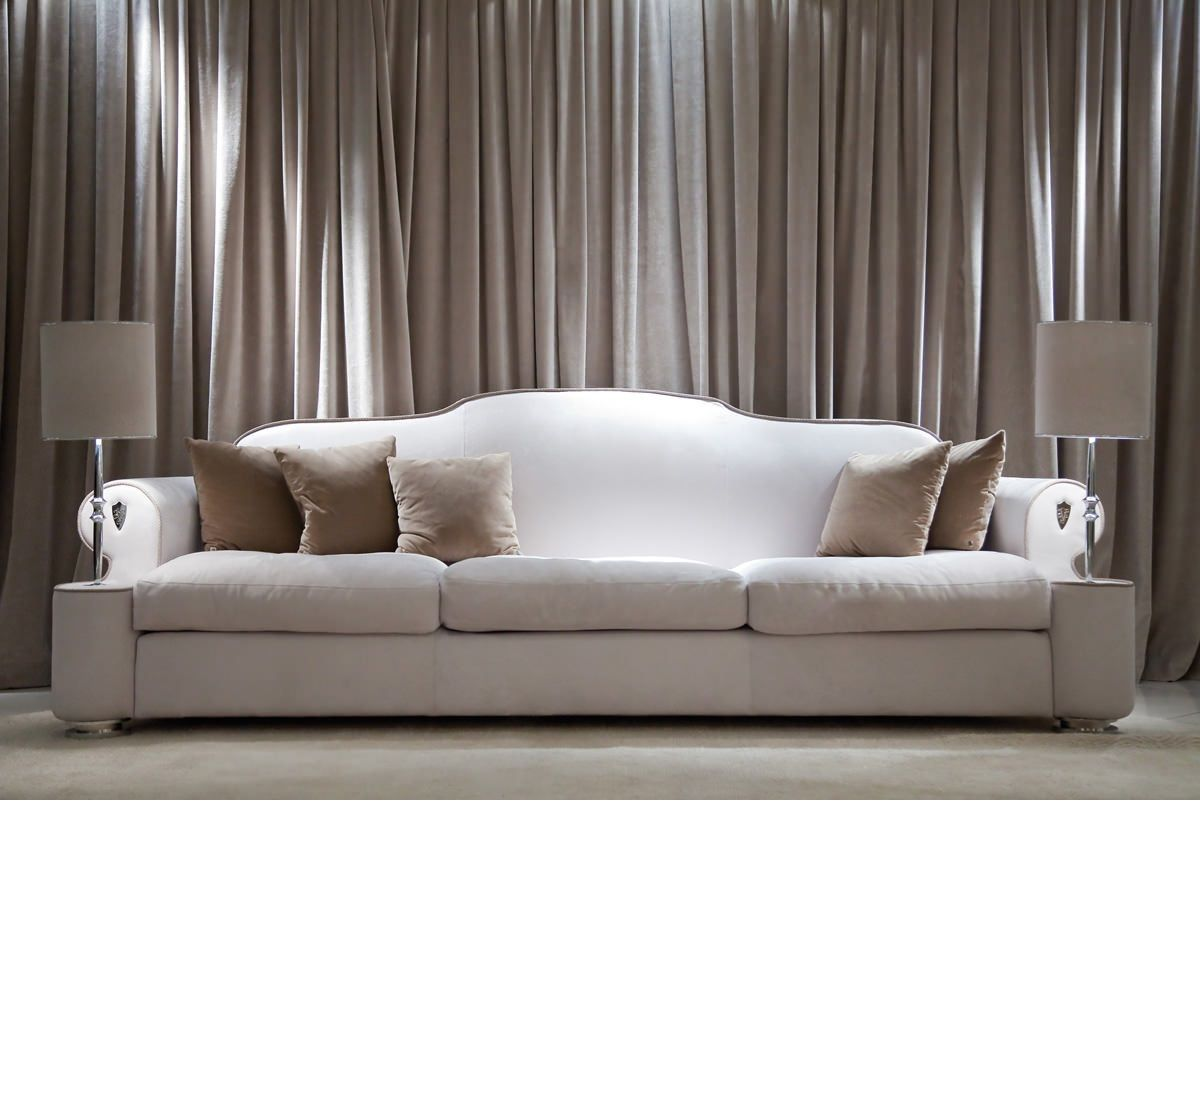 Luxury living room sofa